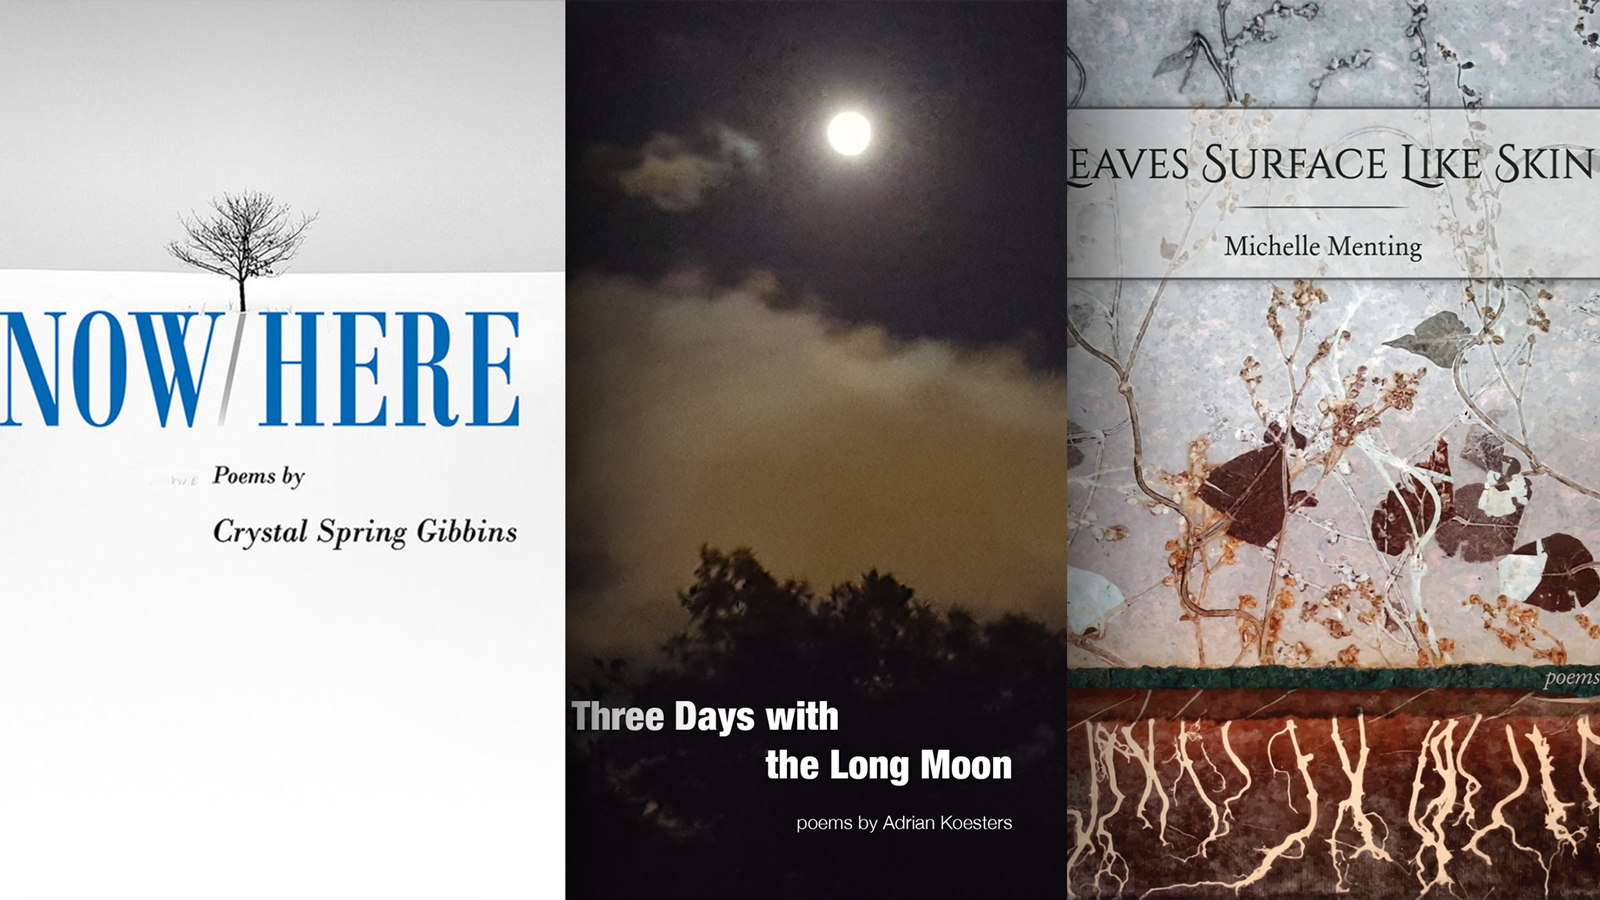 Covers of NowHere, Three Days with the Long Moon, and Leaves Surface Like Skin